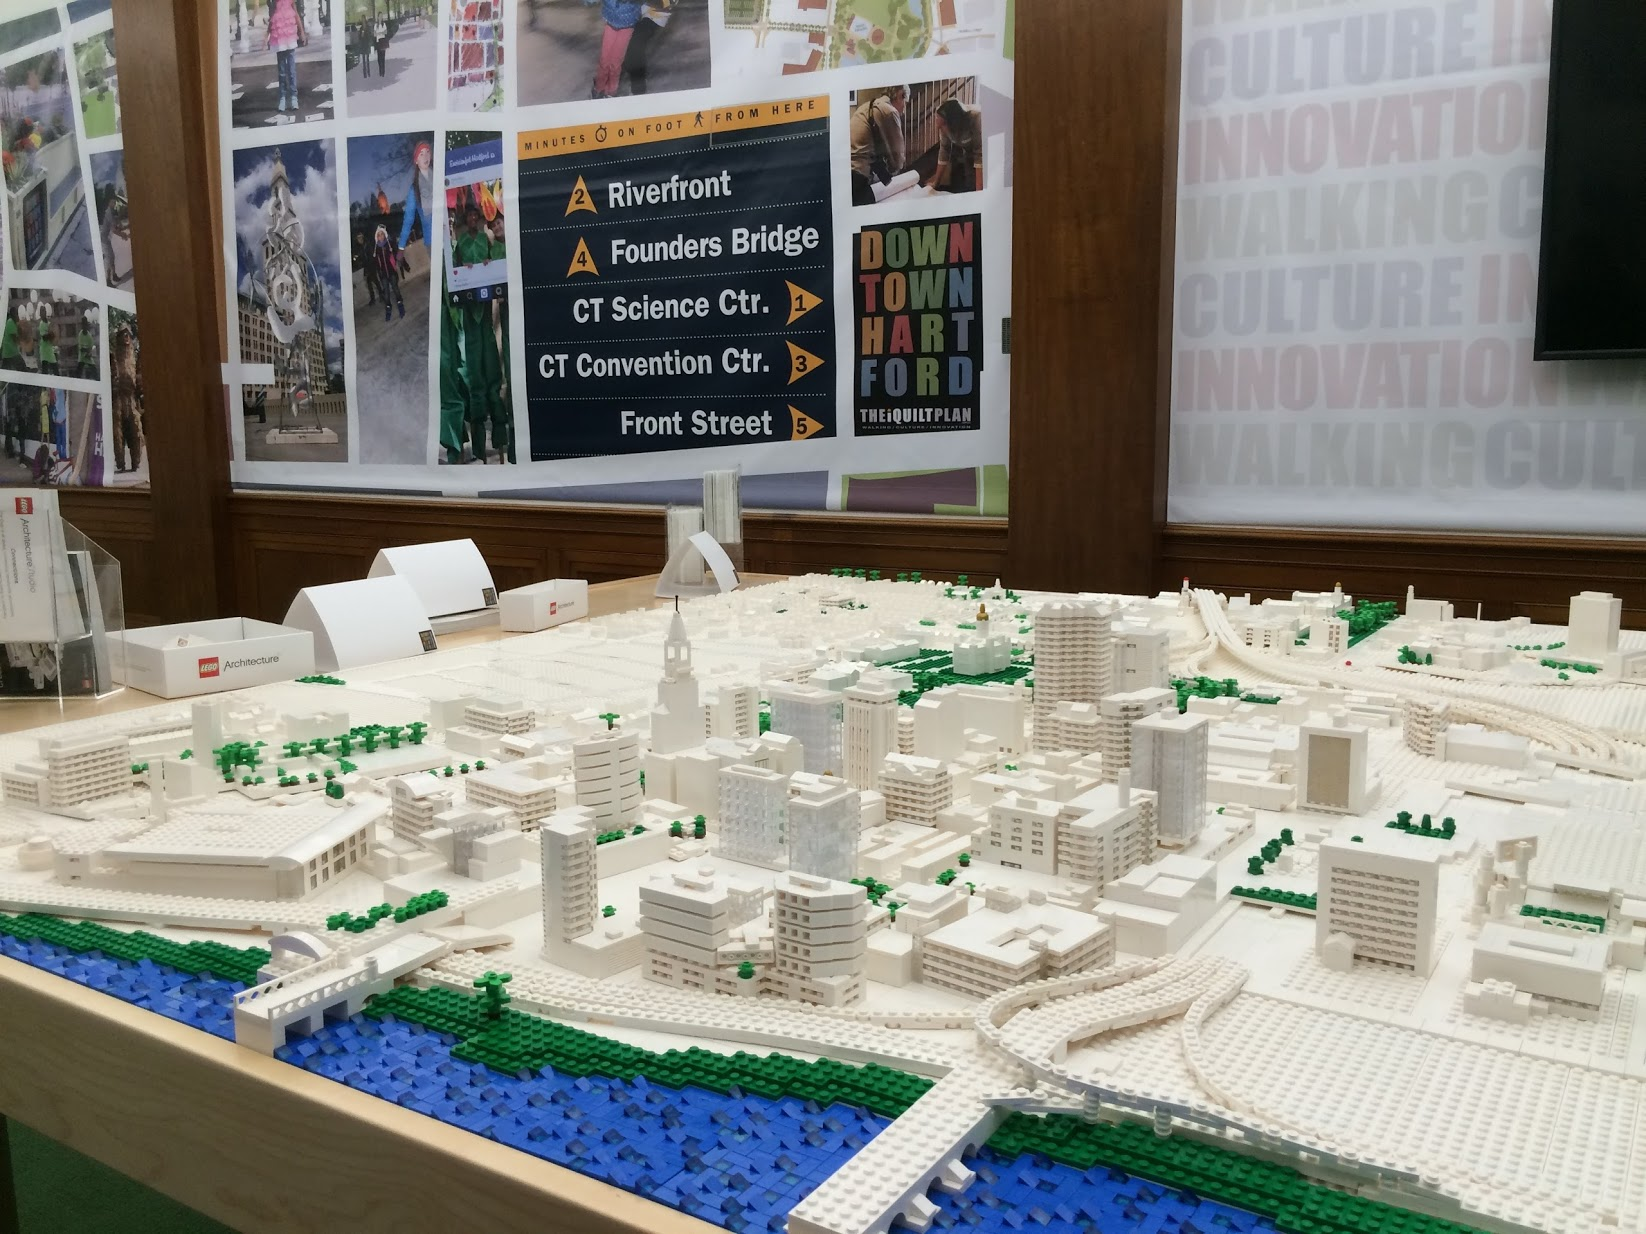 LEGO model of Hartford, CT built for the iQuilt Plan, with help from Connecticut LEGO Users Group (ConnLUG)